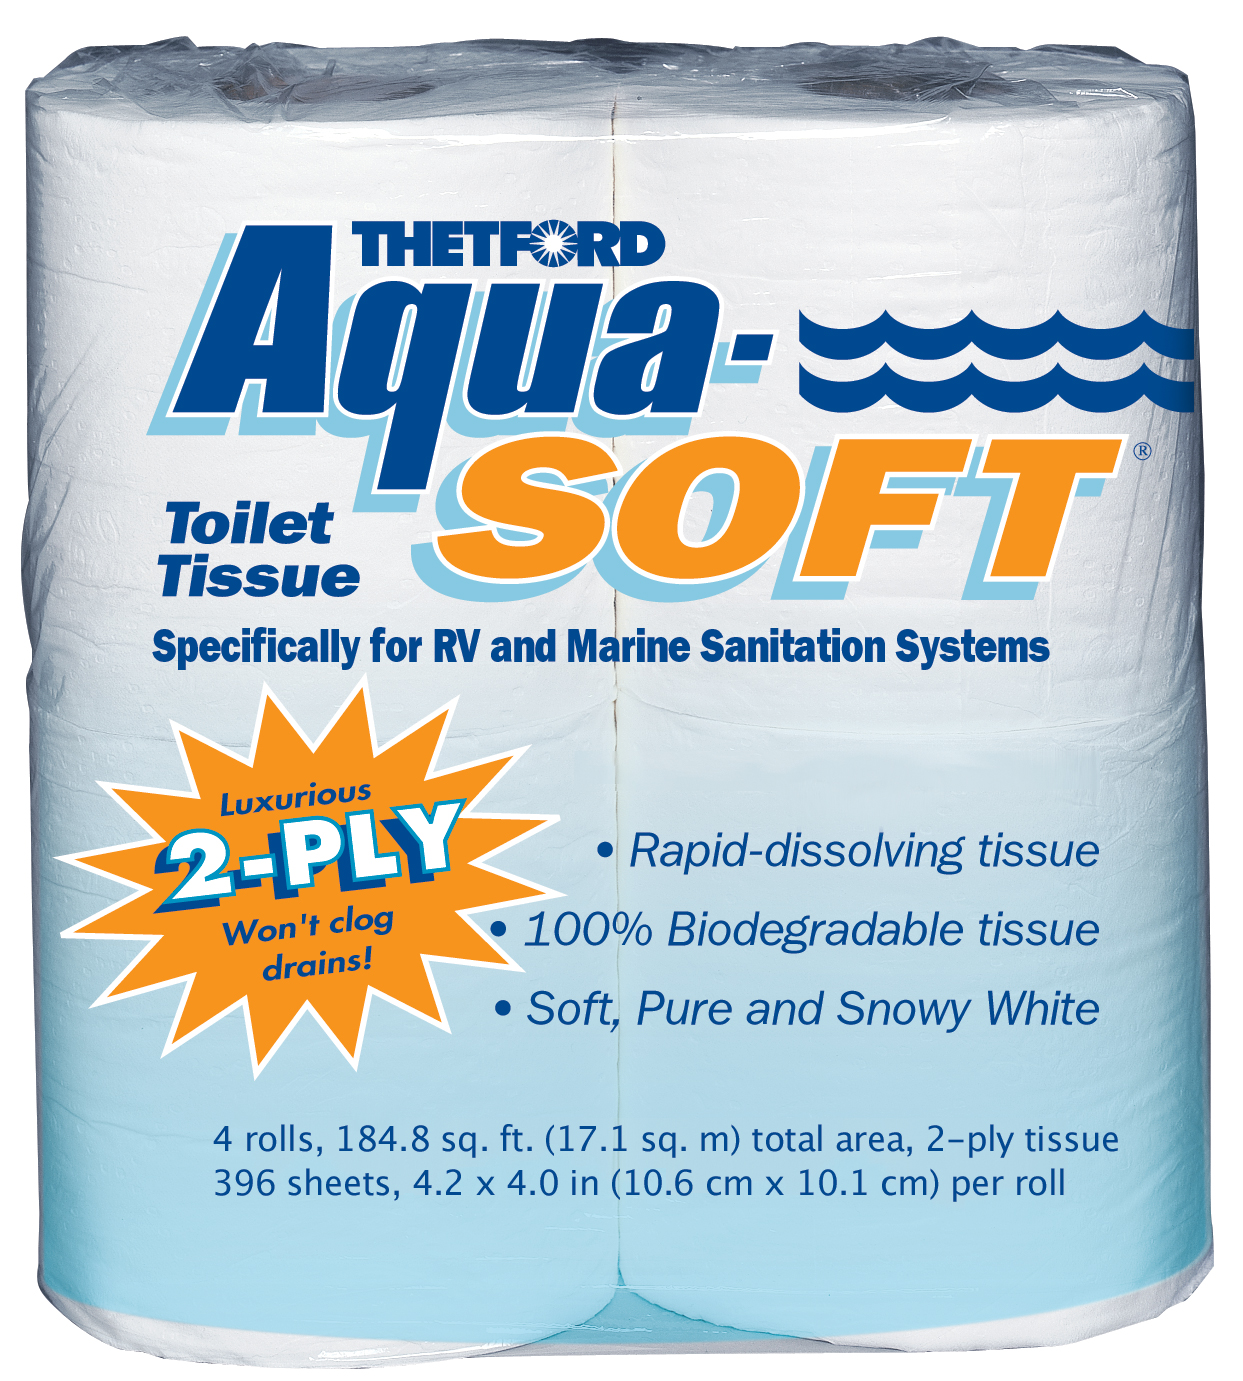 Aqua-Soft Toilet Tissue - Toilet Paper for RV and marine - 2-ply - 4 rolls - Thetford 03300